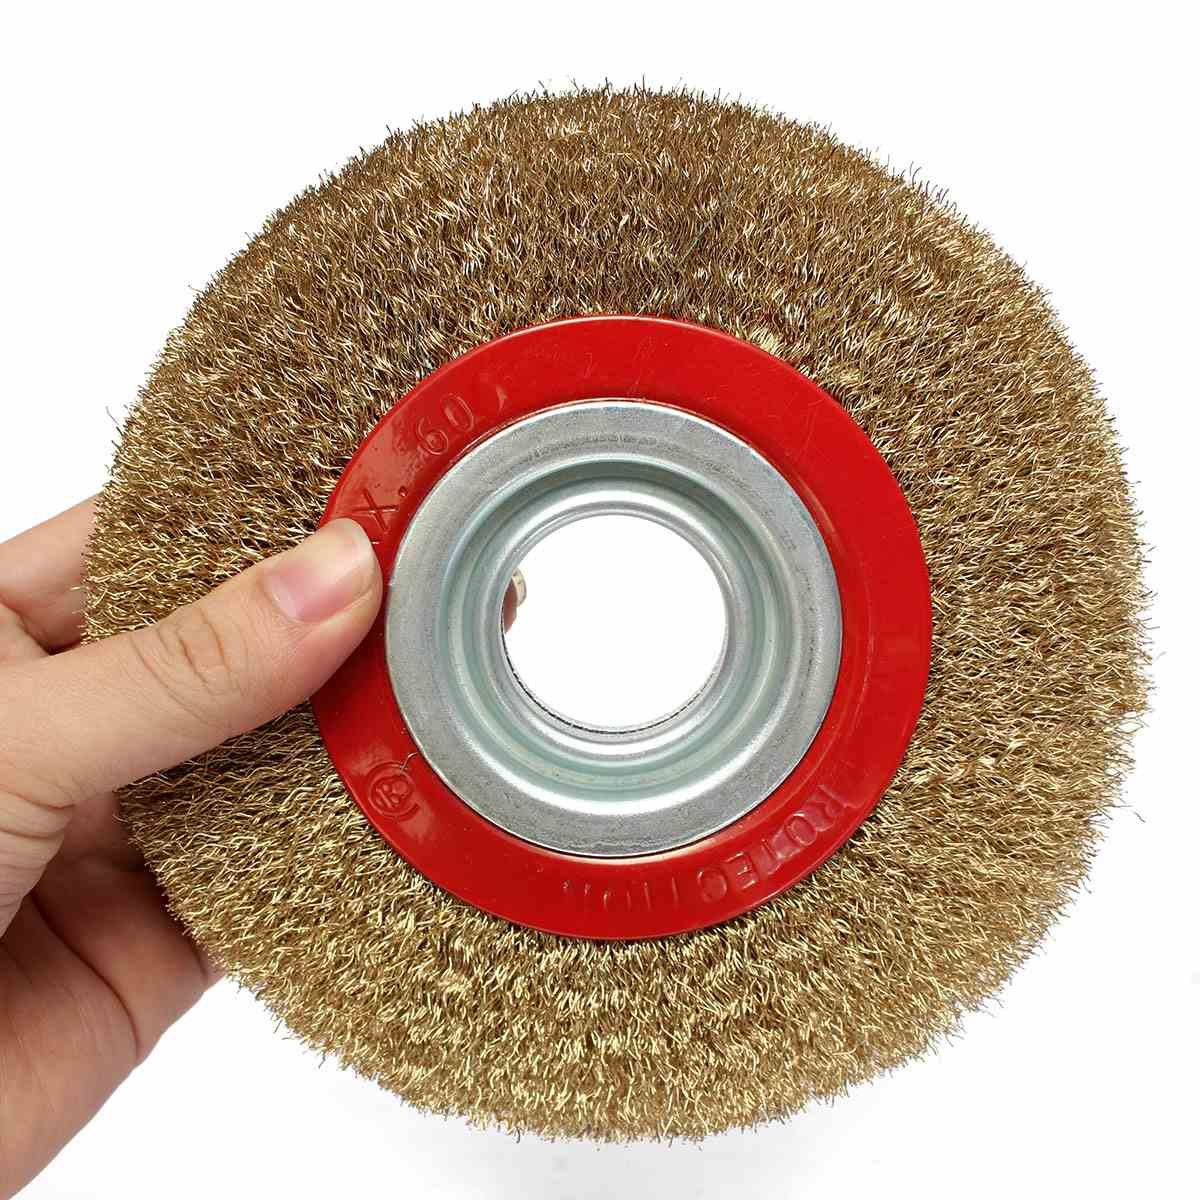 Awesome Us 12 44 52 Off Top Selling 1Pc 6 Inch 150Mm Steel Flat Wire Wheel Brush With 10Pcs Adaptor Rings For Bench Grinder Polish Best Quality In Brush Short Links Chair Design For Home Short Linksinfo